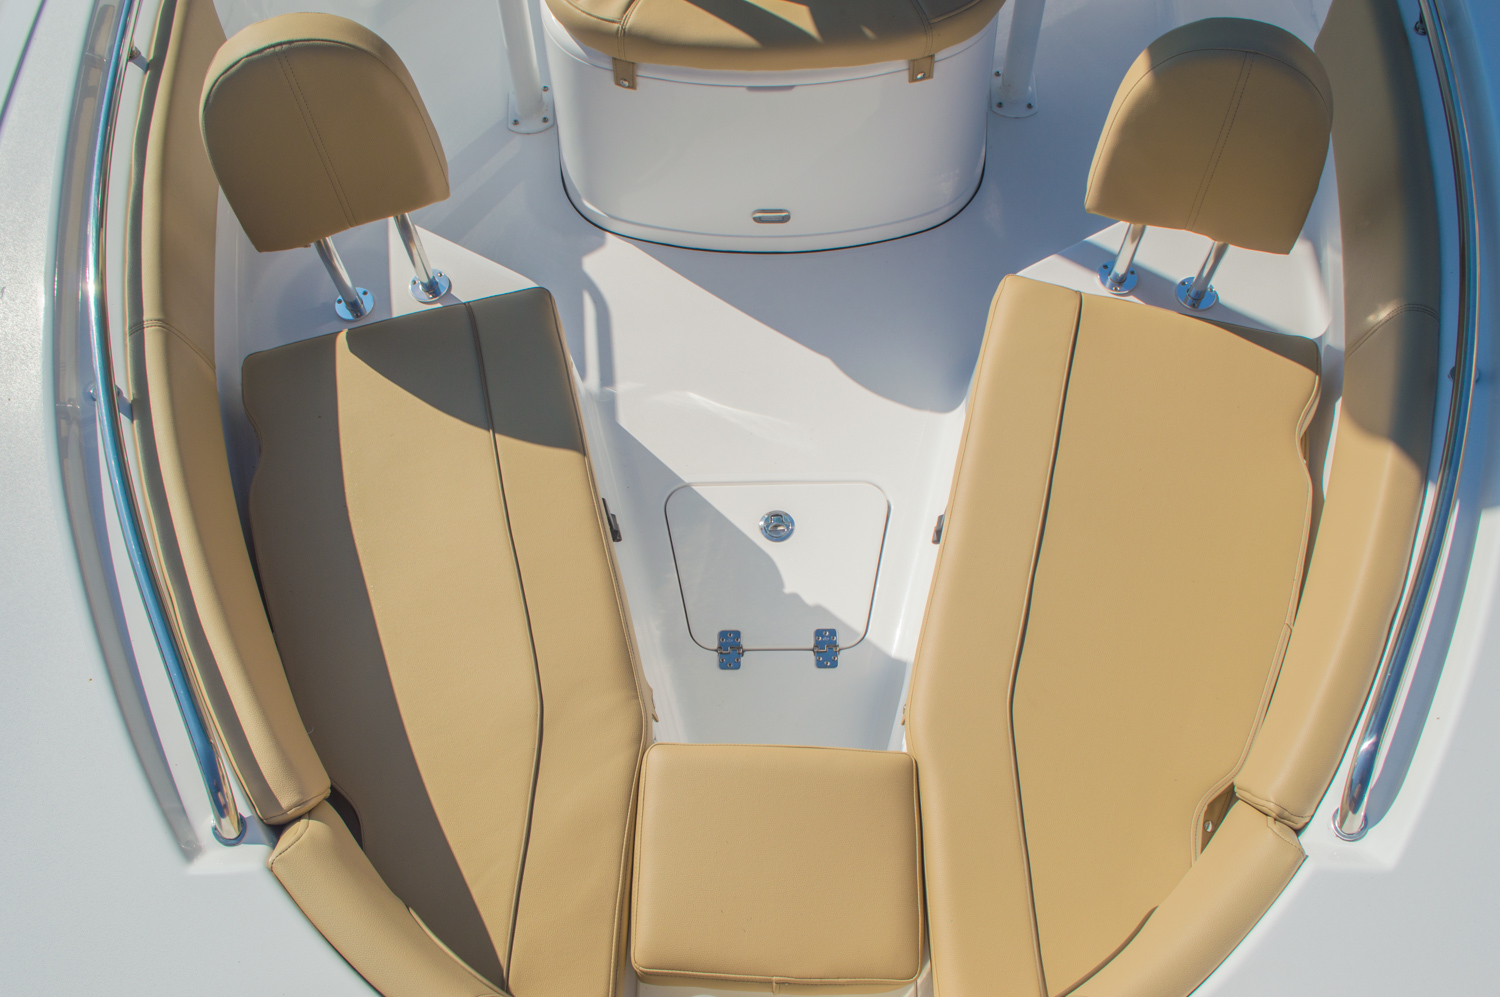 Thumbnail 49 for New 2016 Sportsman Open 212 Center Console boat for sale in West Palm Beach, FL